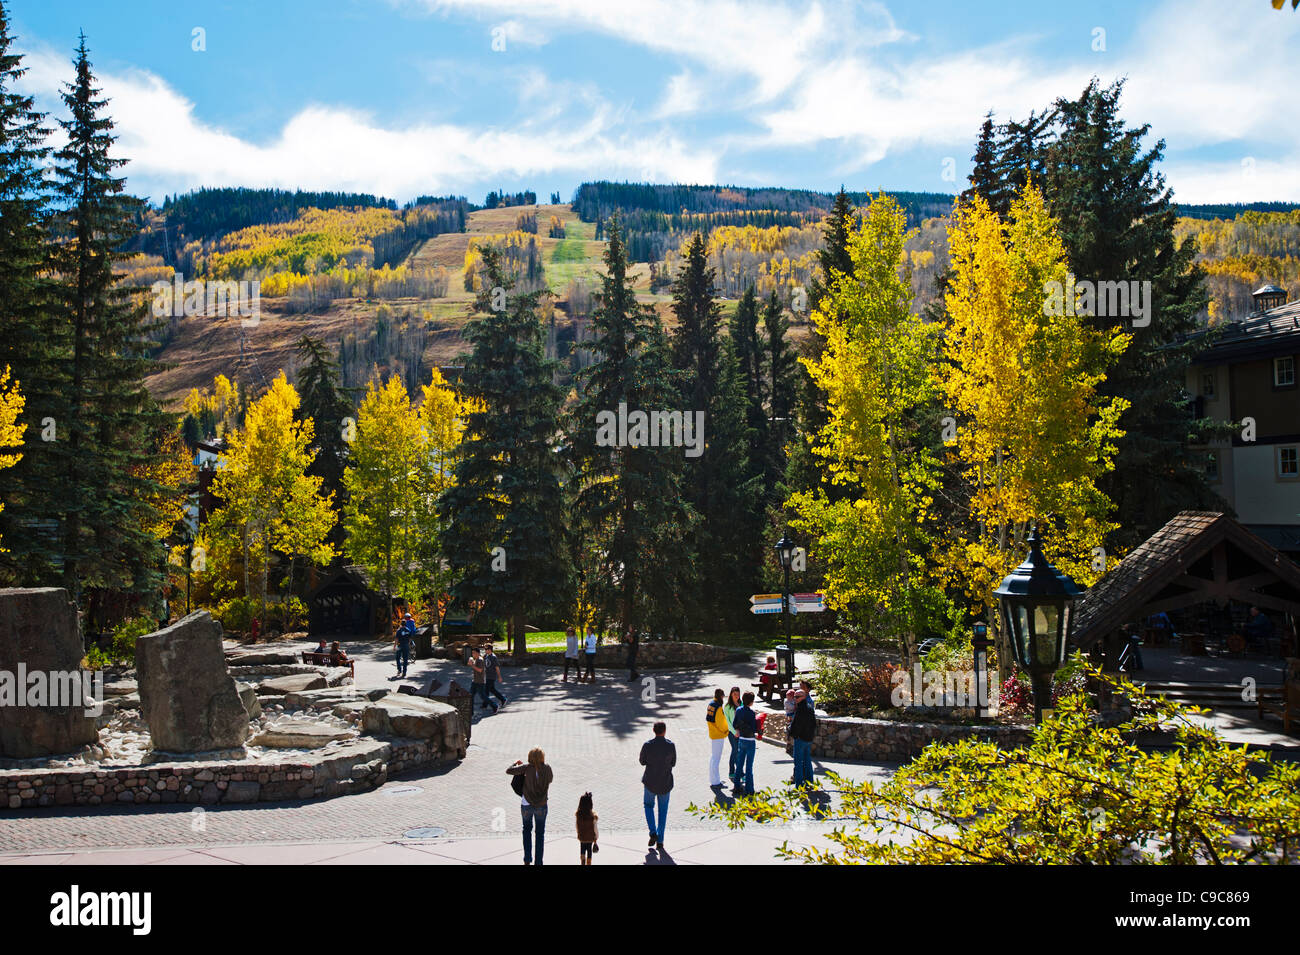 Vail Colorado in the Fall just before Ski Season with ski trails / slopes in background - Stock Image